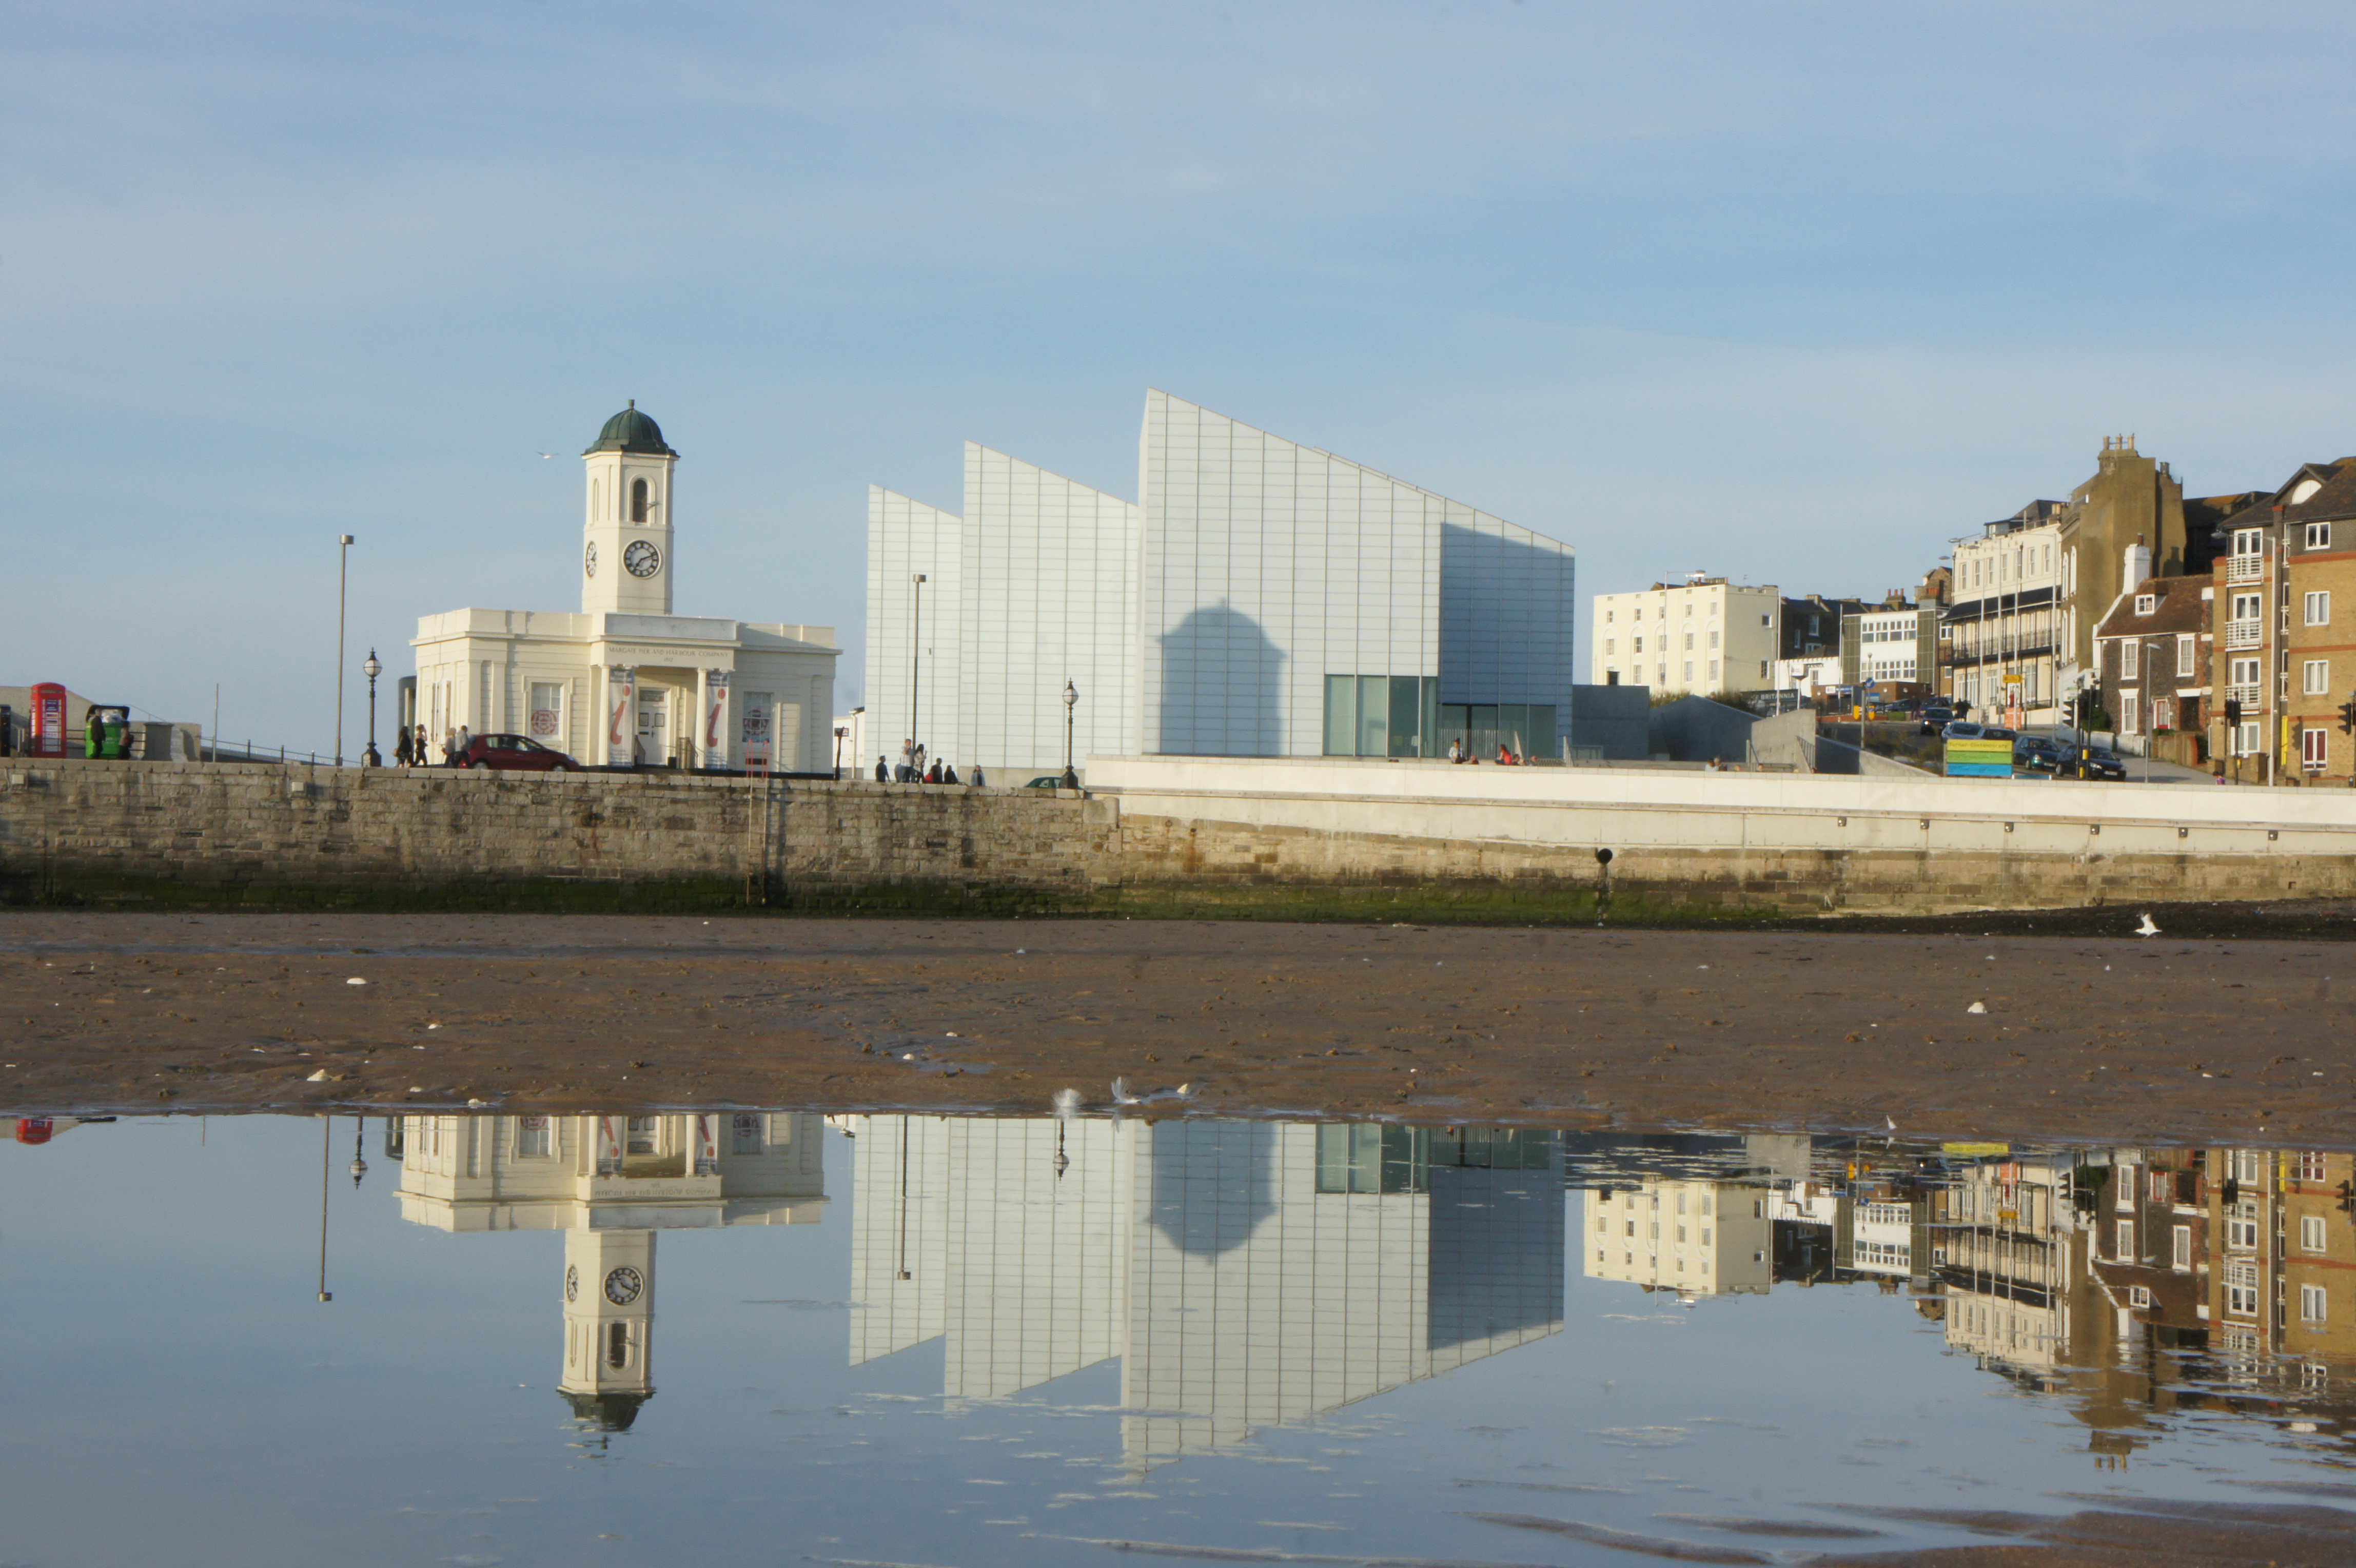 Turner Contemporary and Droit House